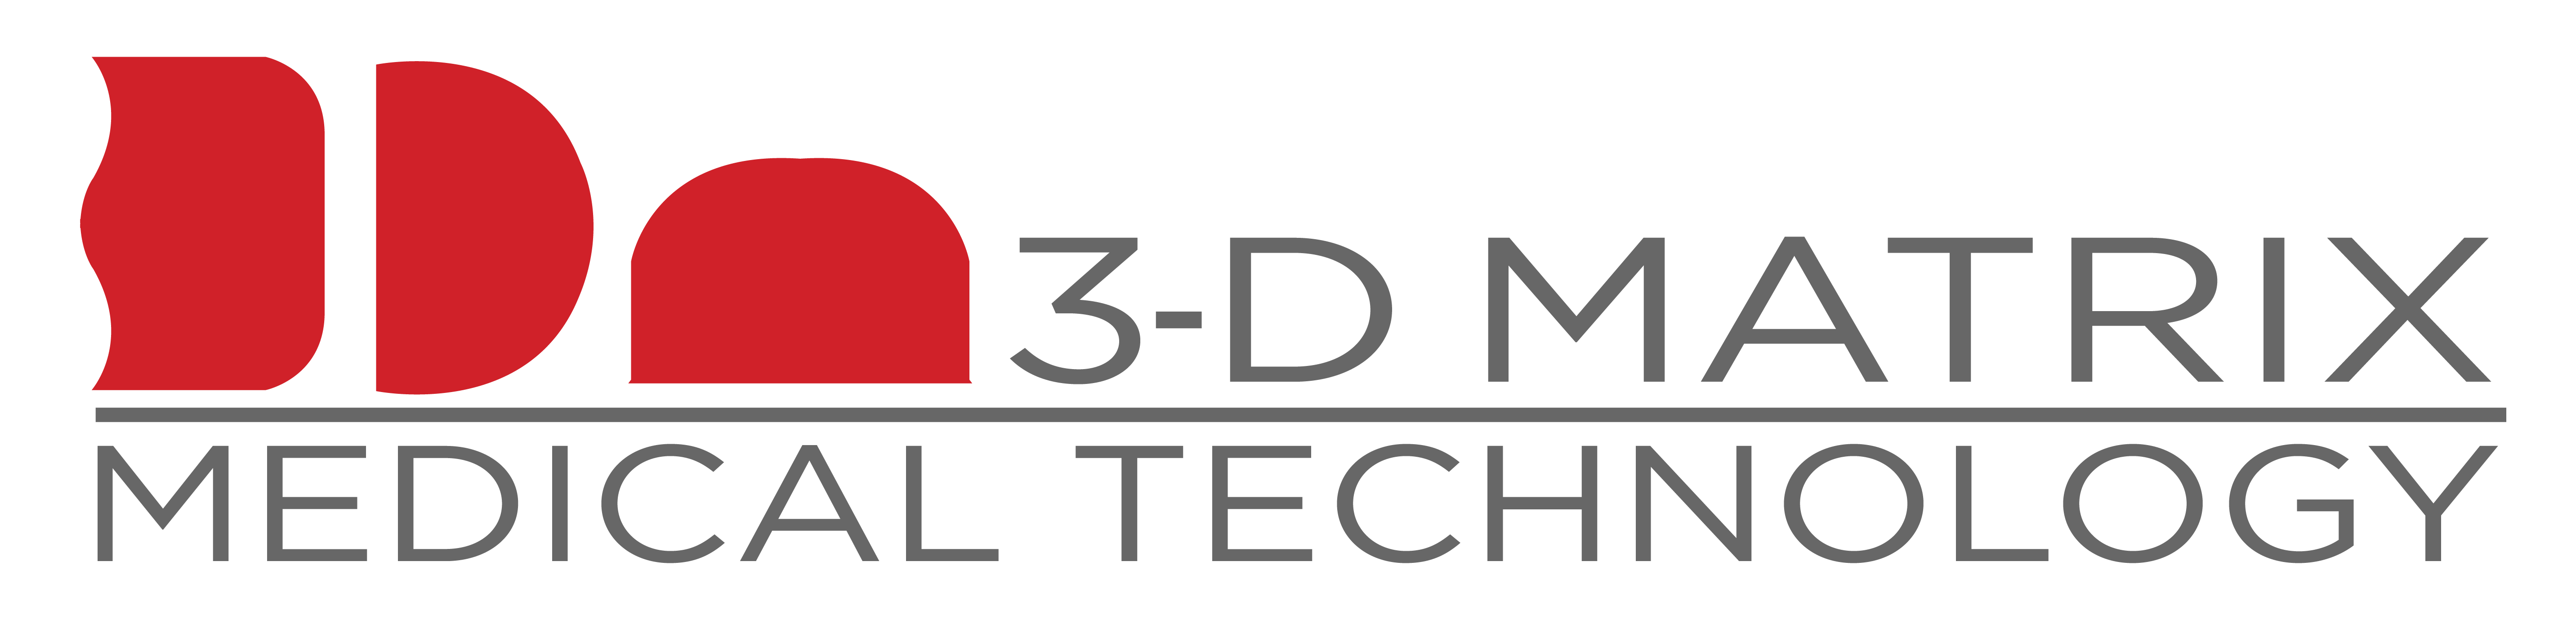 3D Matrix Medical Technology